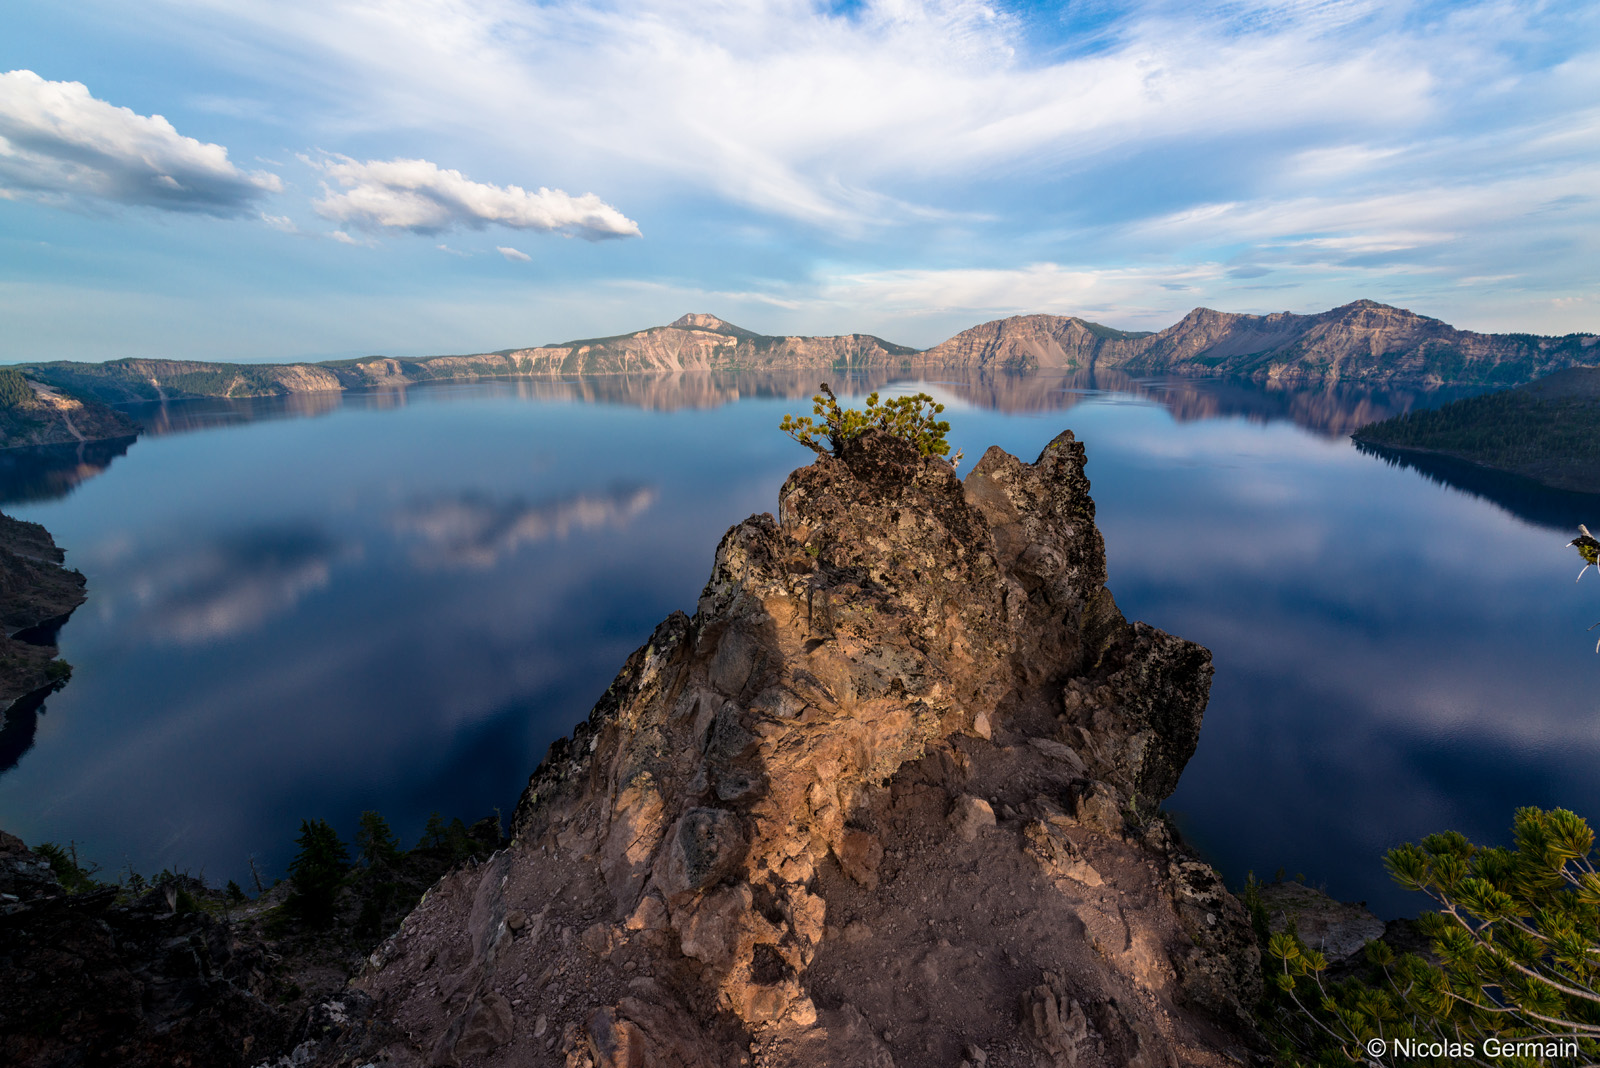 Réflection du ciel dans le lac de Crater Lake, Oregon